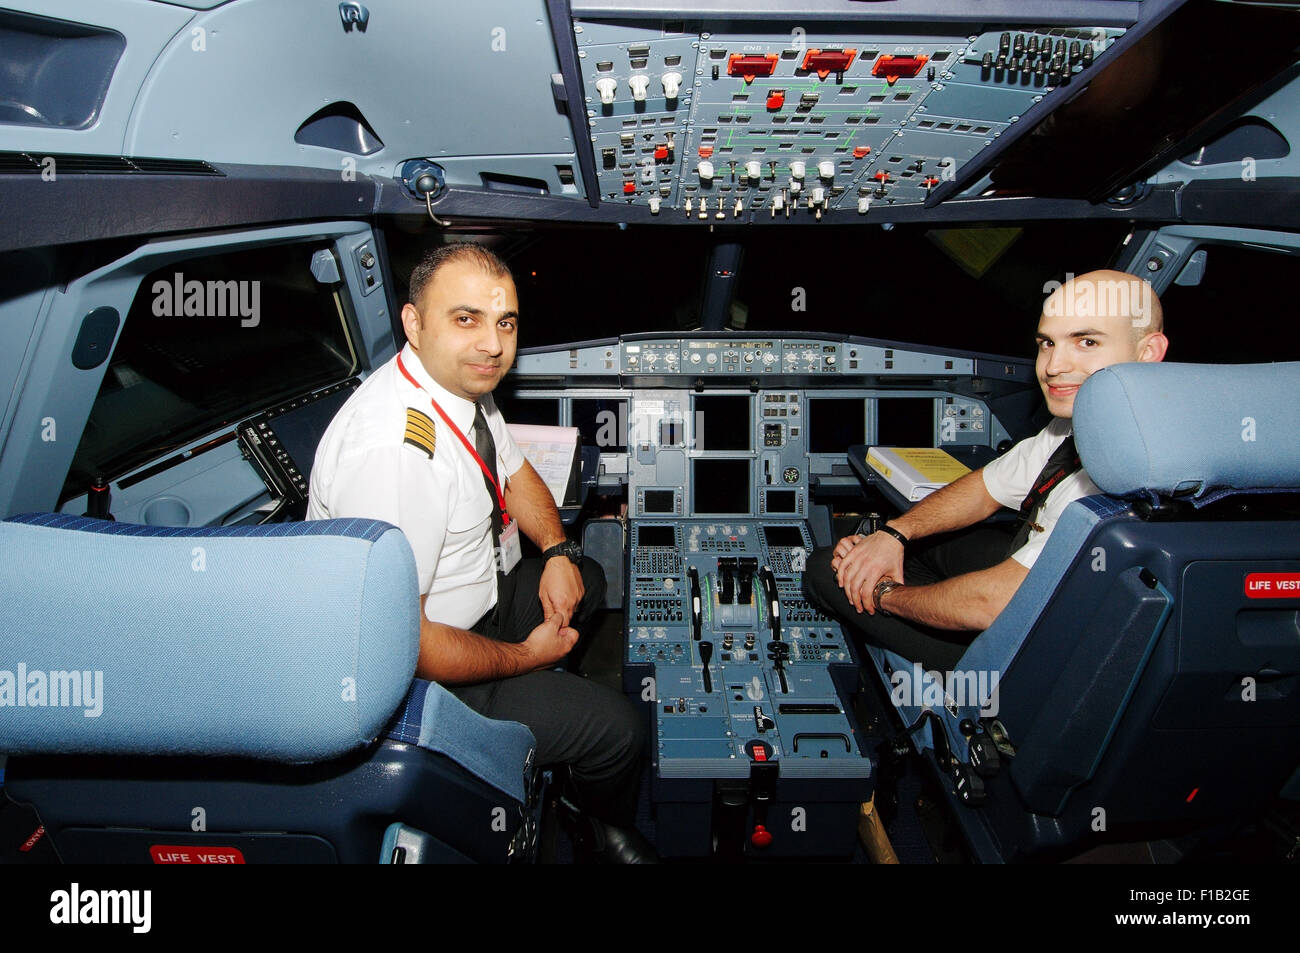 Oct 15 2014 sharjah emirate united arab emirates pilots aircraft airbus a 320 in the cockpit airport sharjah sharjah emirate uae credit image